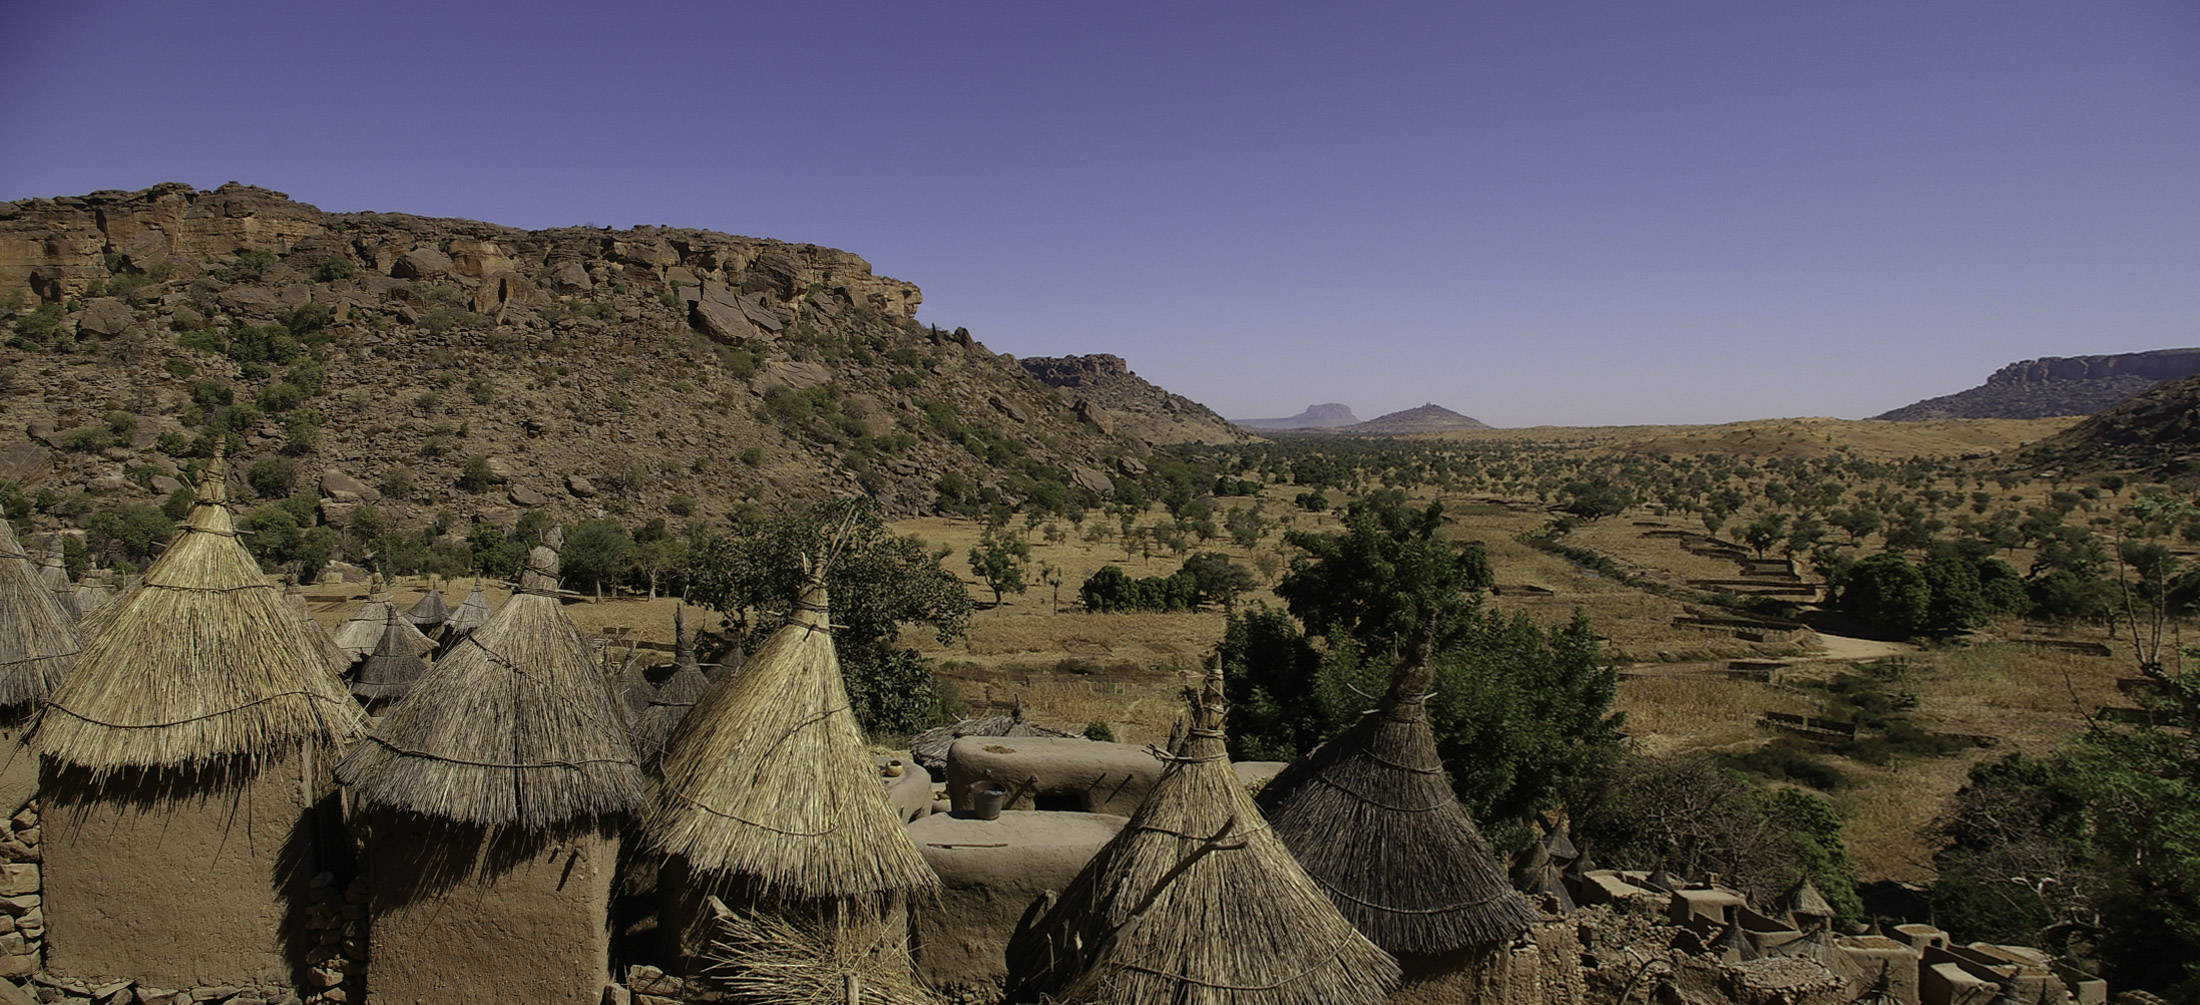 Bandager cliff and Dogon village